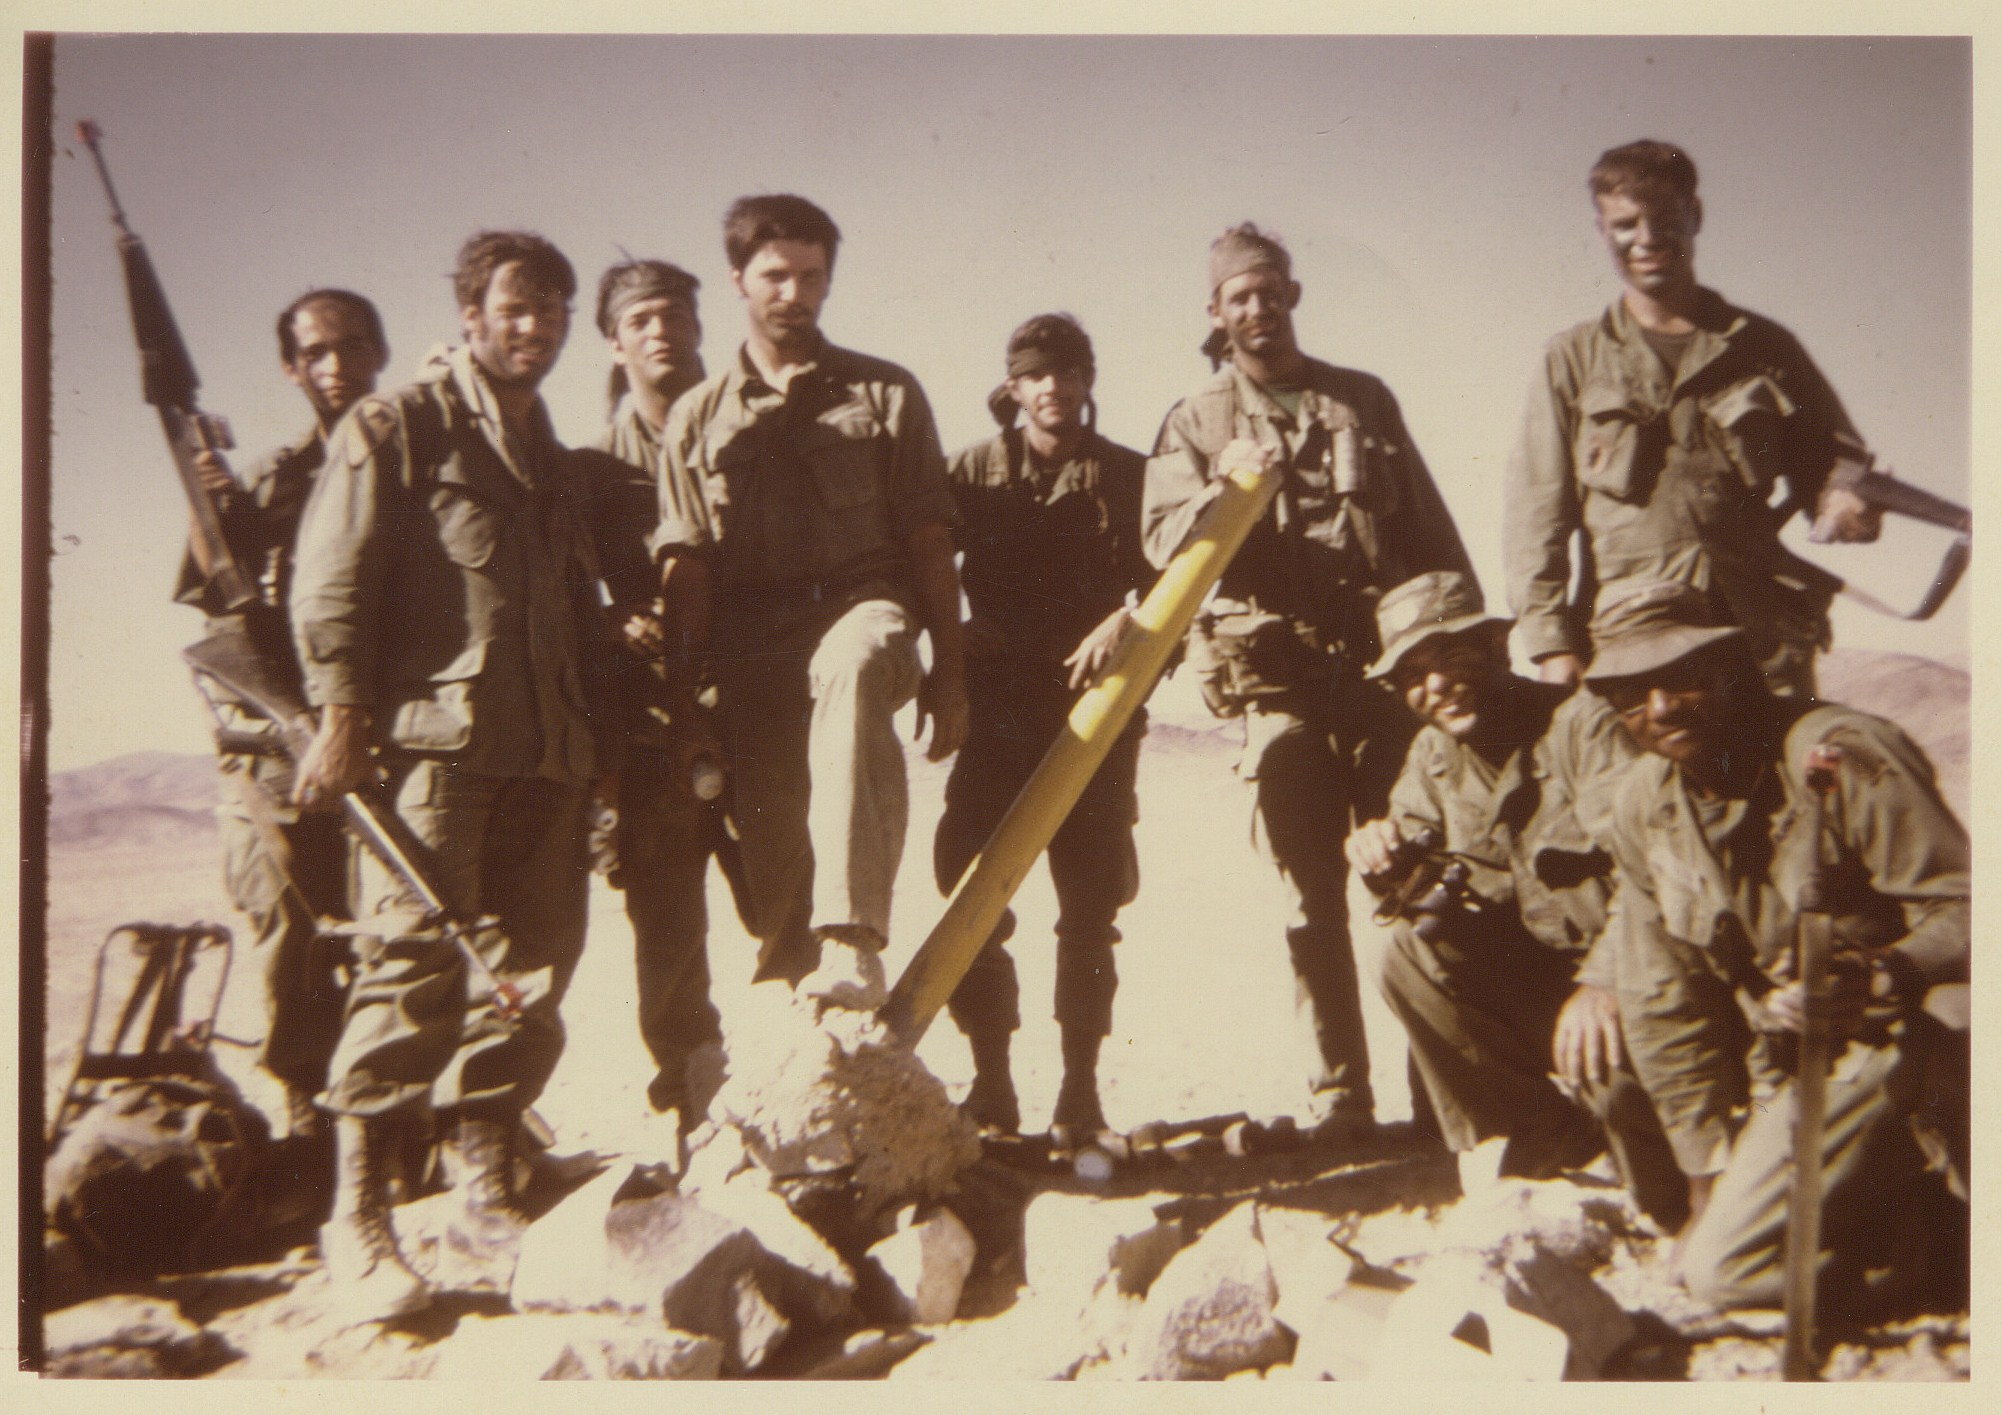 31 A 332 company C 3rd bn 12th special forces group a on desert patrol